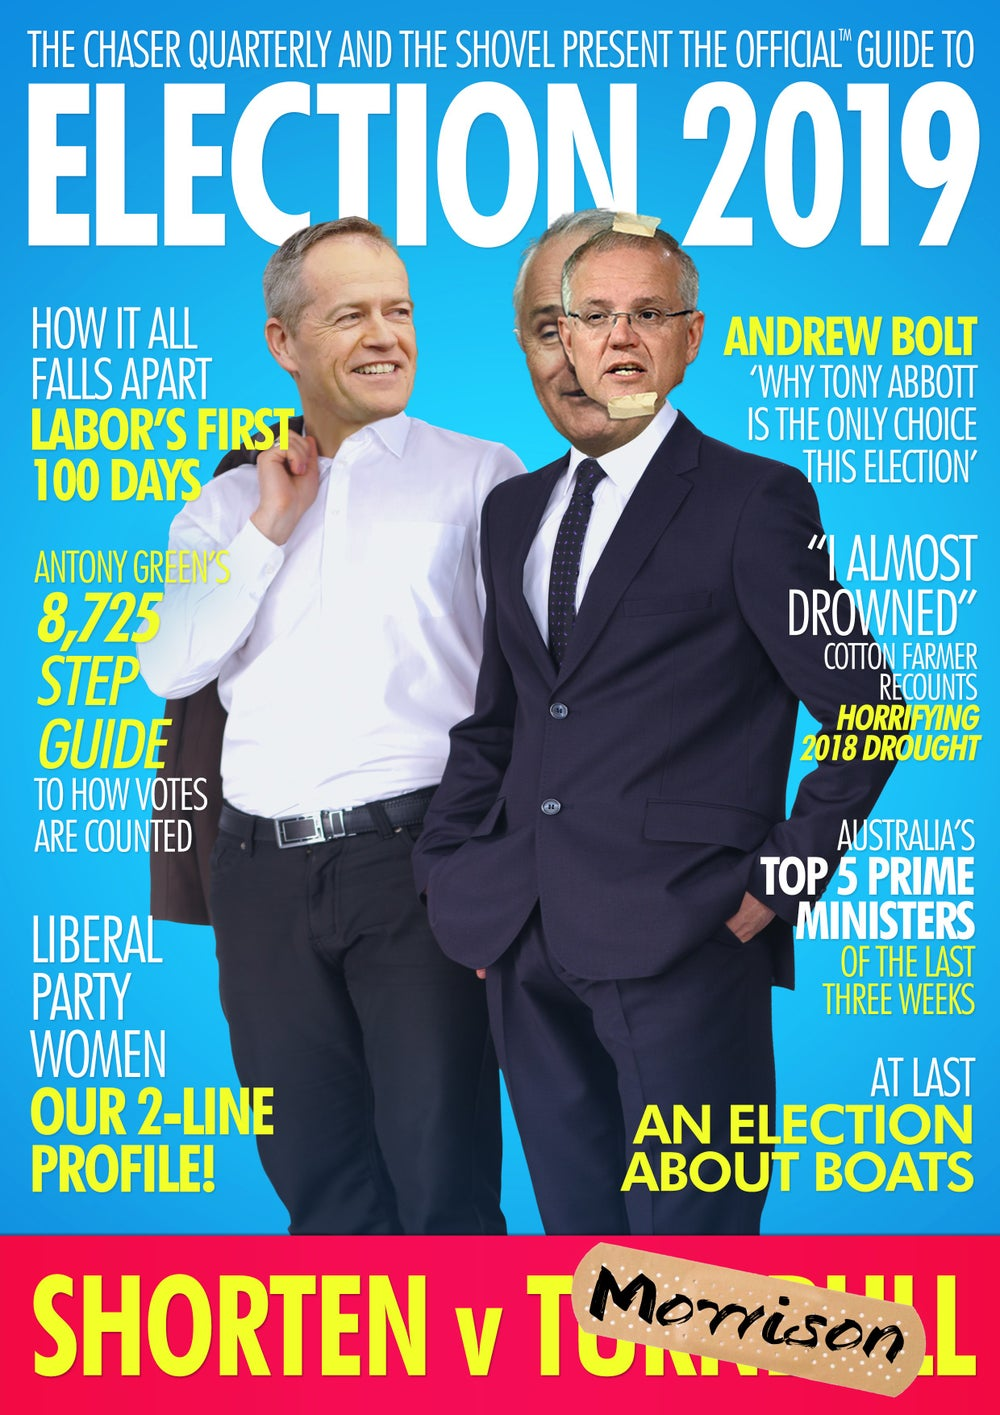 Image of The Official 2019 Election Guide